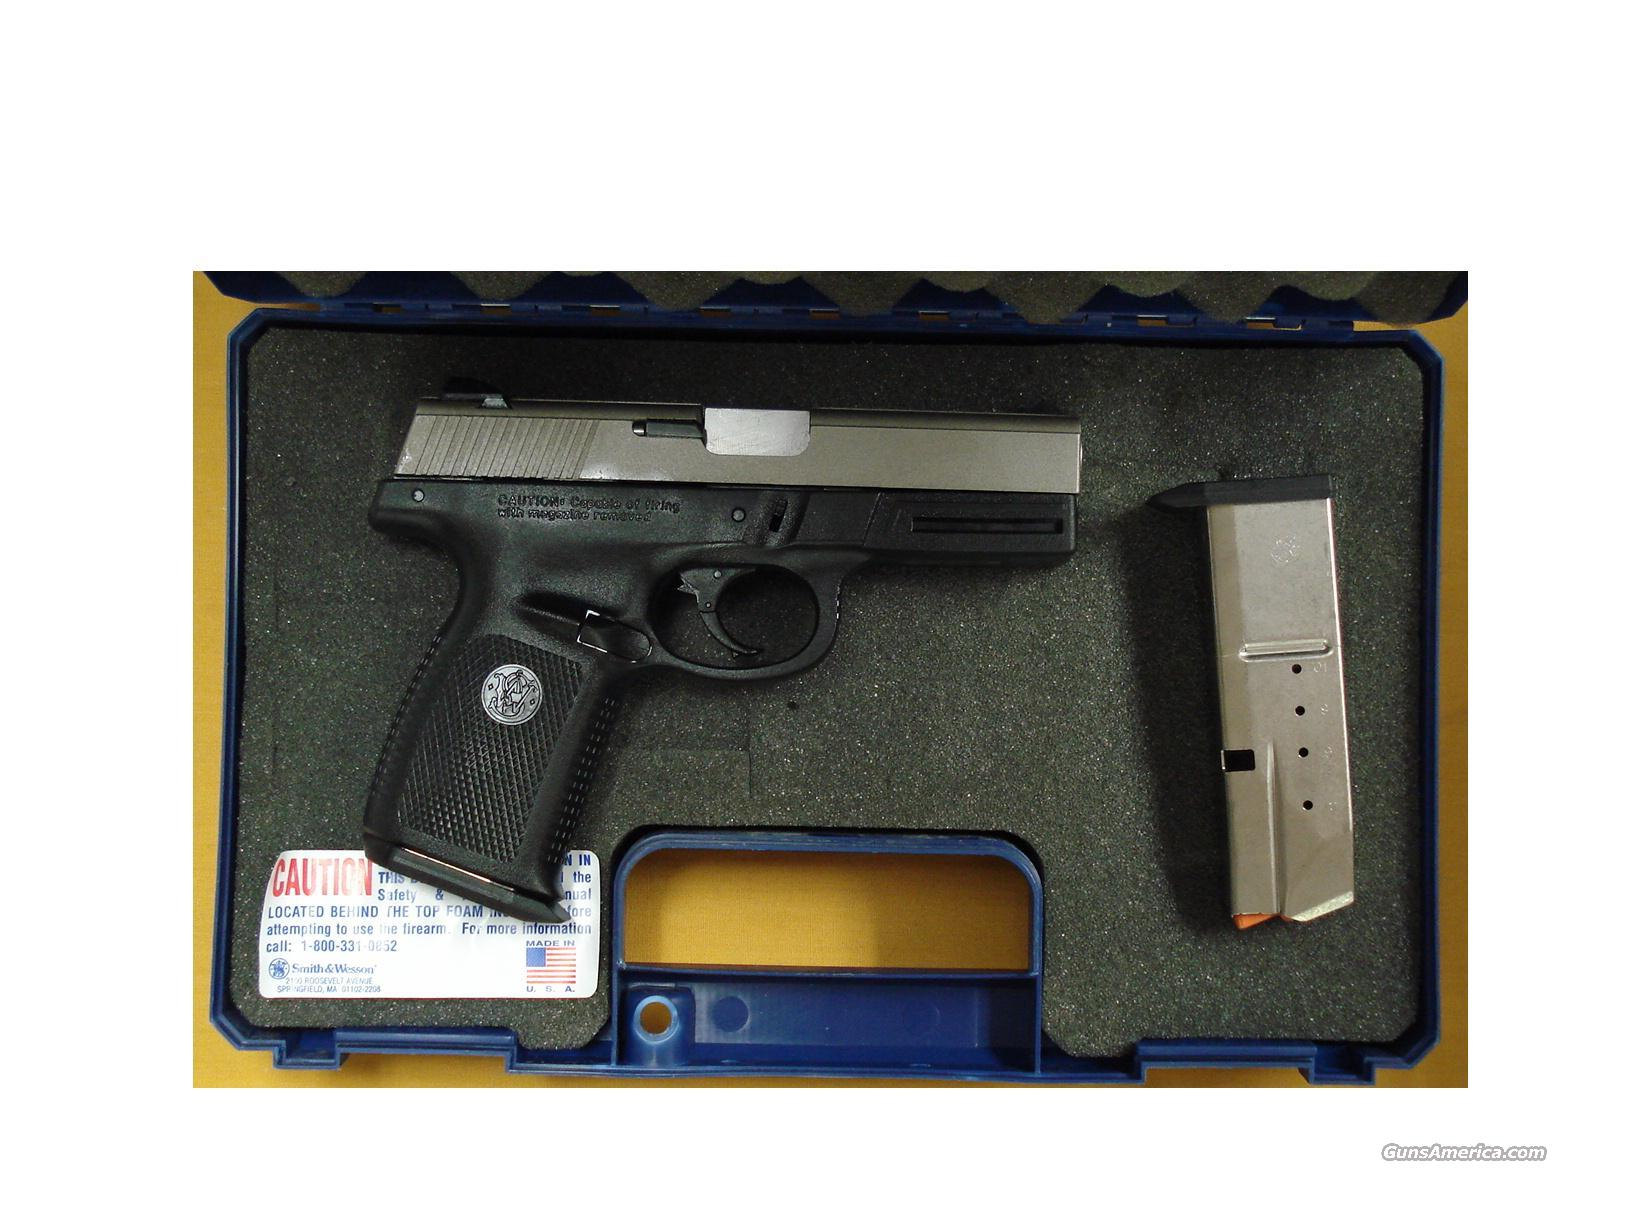 "S&W SW40VE .40S&W 4""BARREL  Guns > Pistols > Smith & Wesson Pistols - Autos > Polymer Frame"